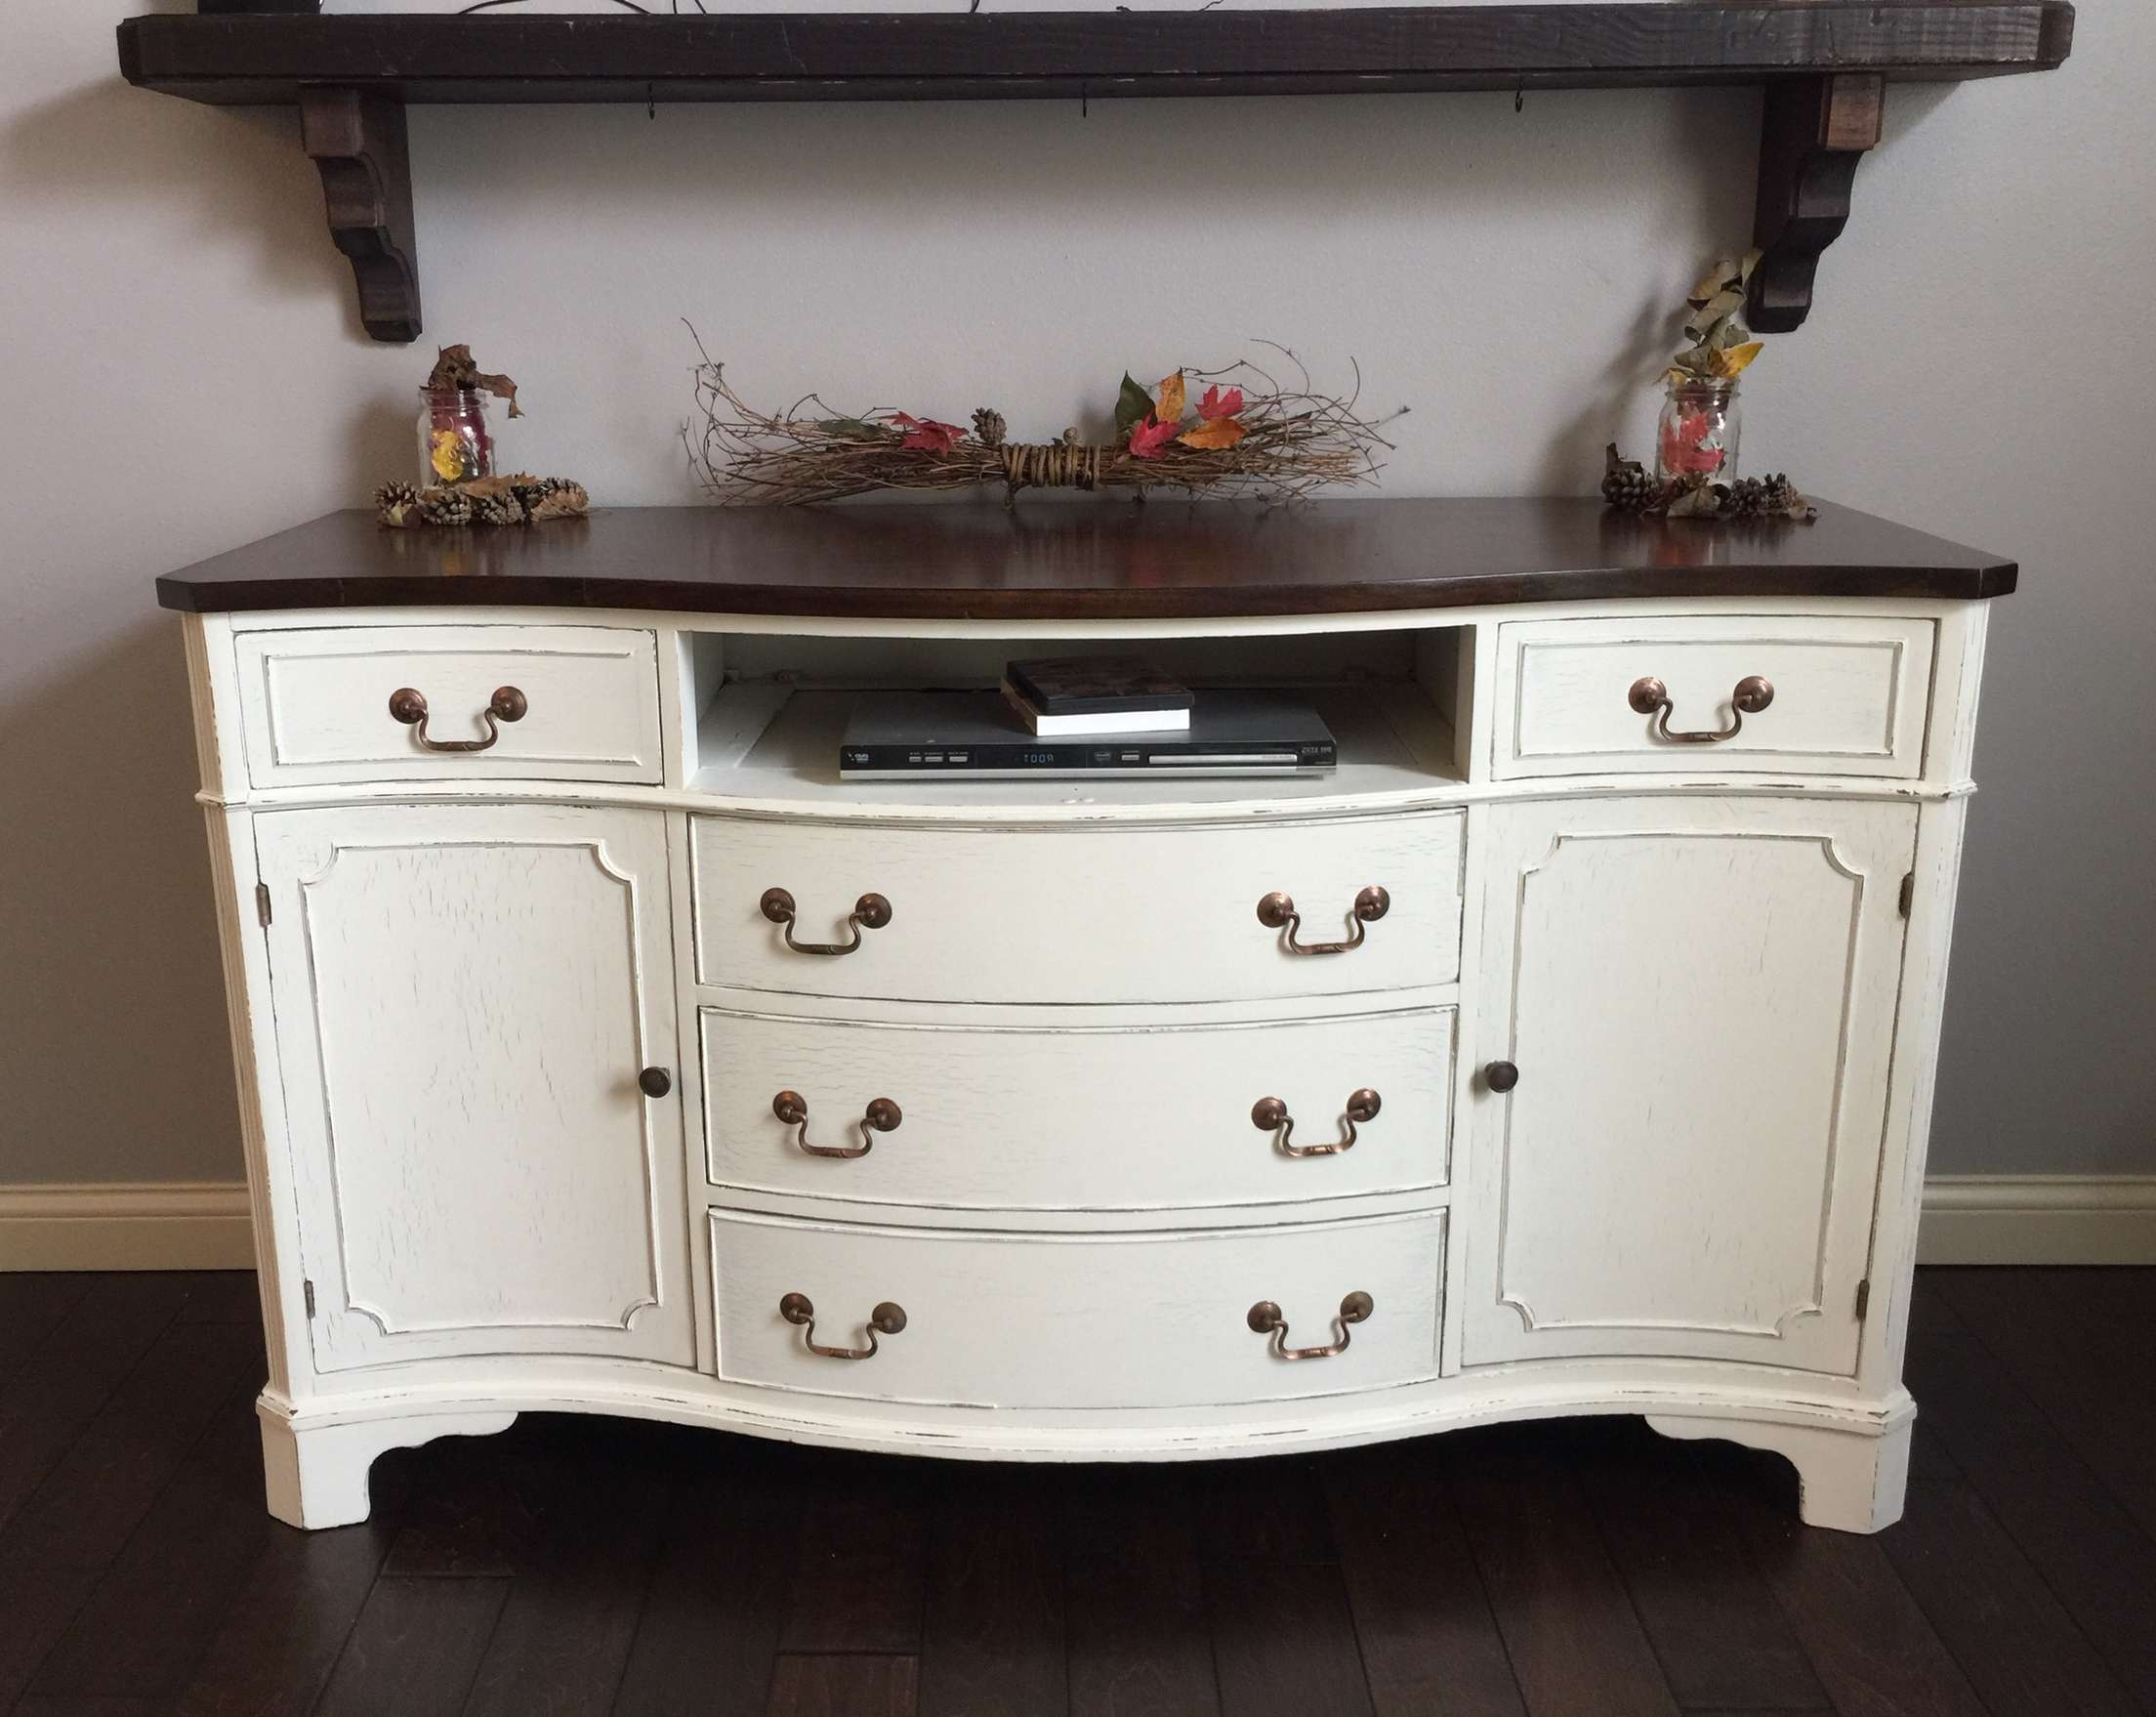 Awesome Distressed Buffet Sideboard – Bjdgjy Within Distressed Buffet Sideboards (View 14 of 20)